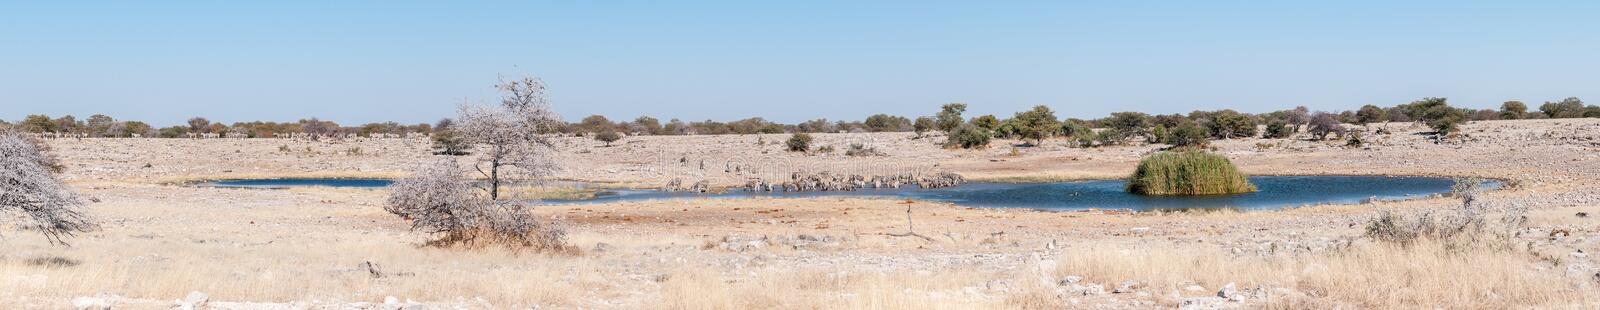 Burchells zebras drinking water at a waterhole in Northern Namibia. A large herd of Burchells zebras, Equus quagga burchellii, drinking water at a waterhole in stock photos